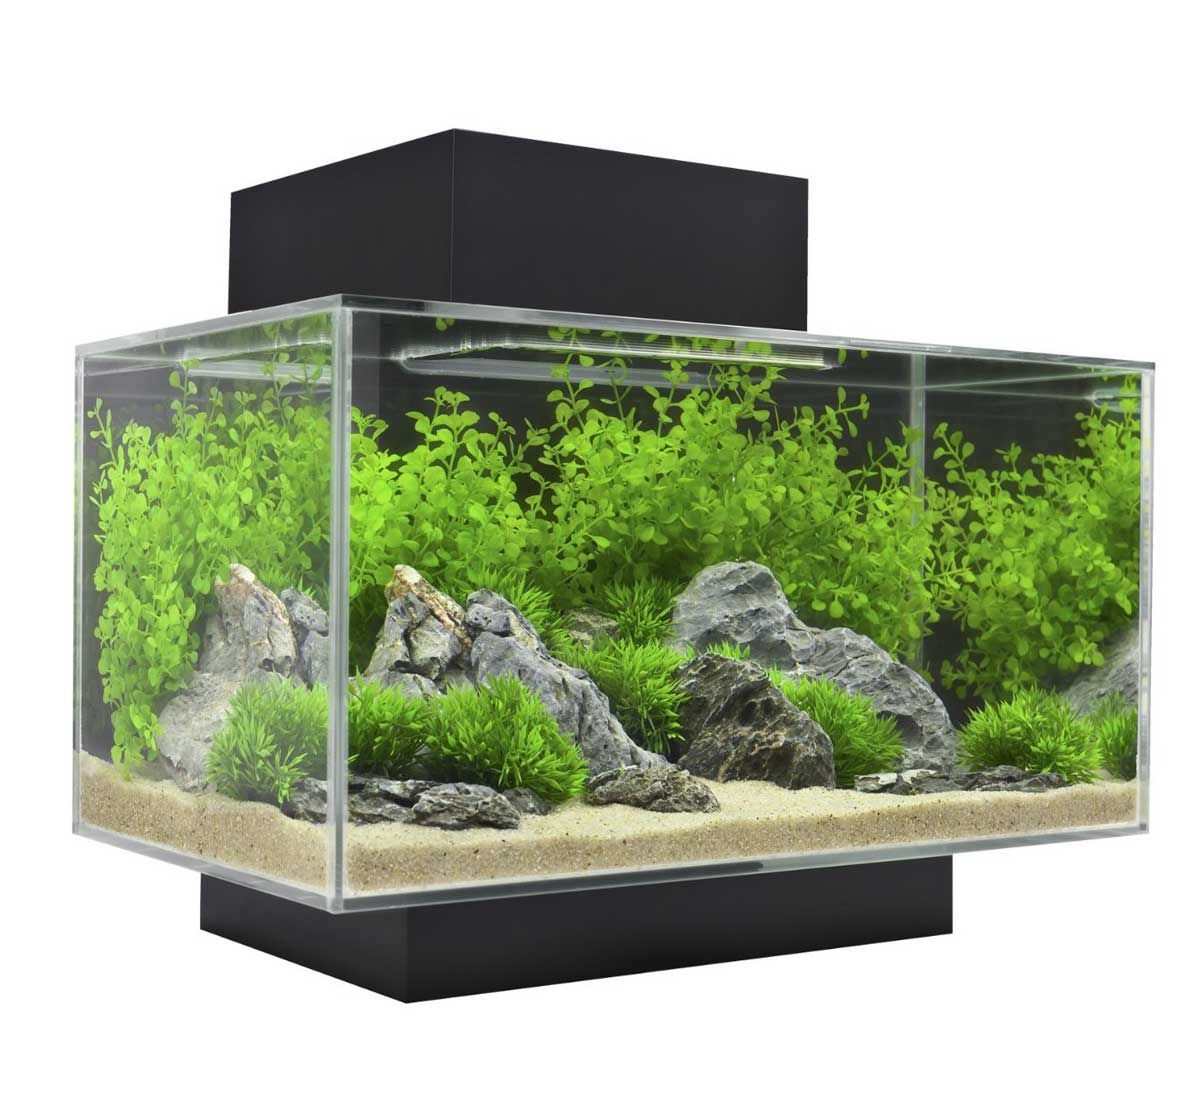 Fish aquarium price india - Buy Online Fluval Edge Aquarium Set Led Black 23ltr At Online Fish Store India Http